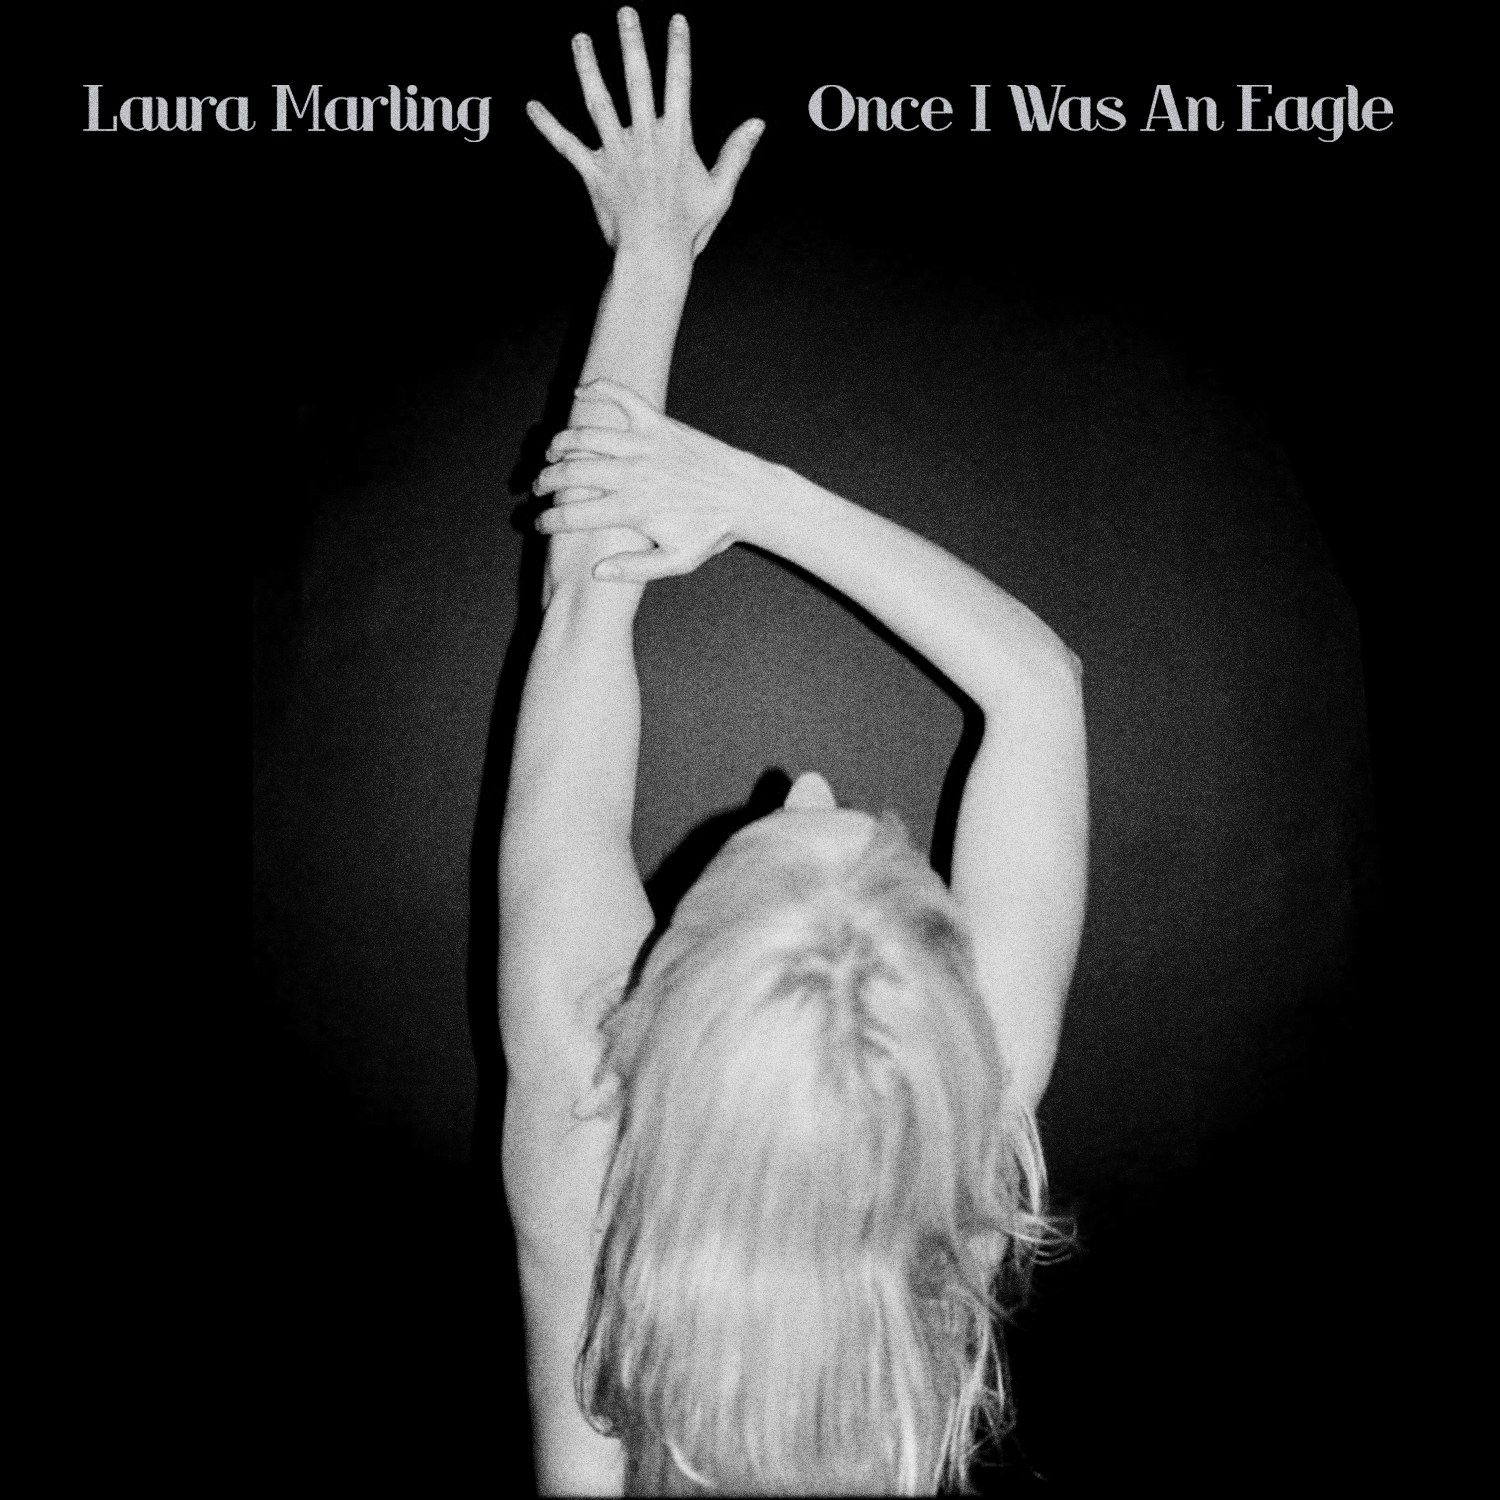 LauraMarling_OIWAE_sleeve1